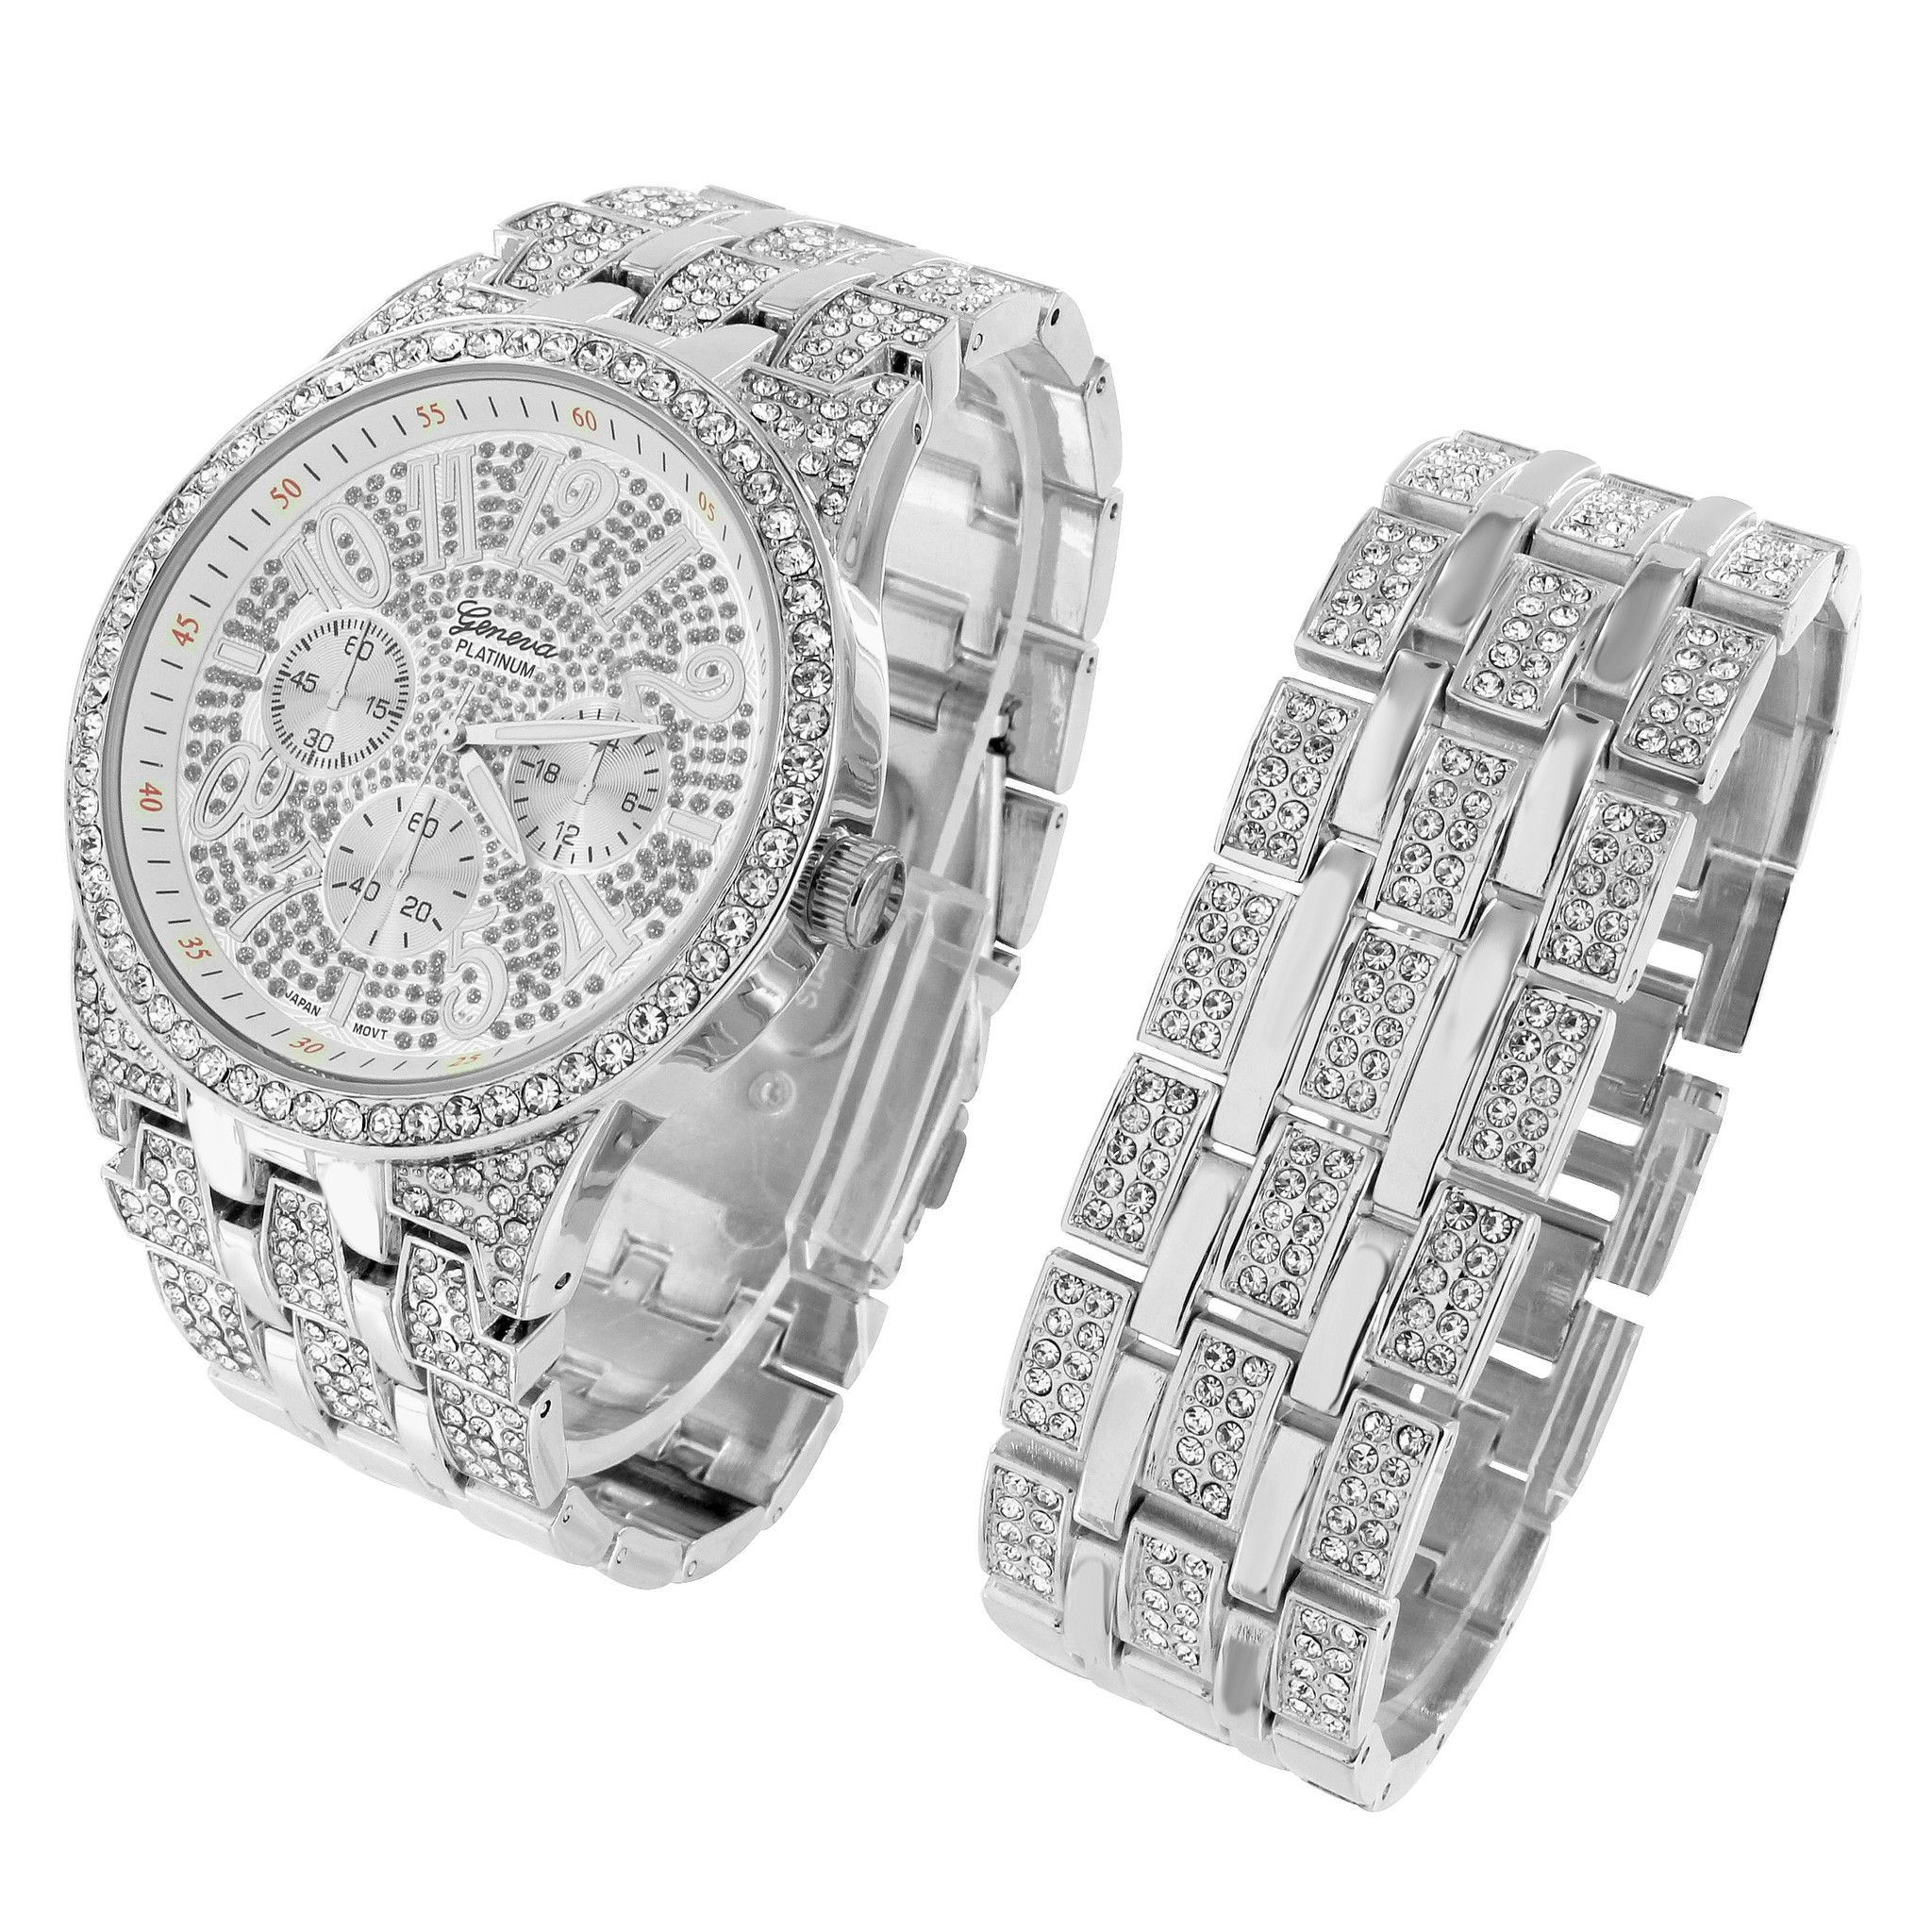 Rectangle face watch iced out simulated diamonds matching bracelet